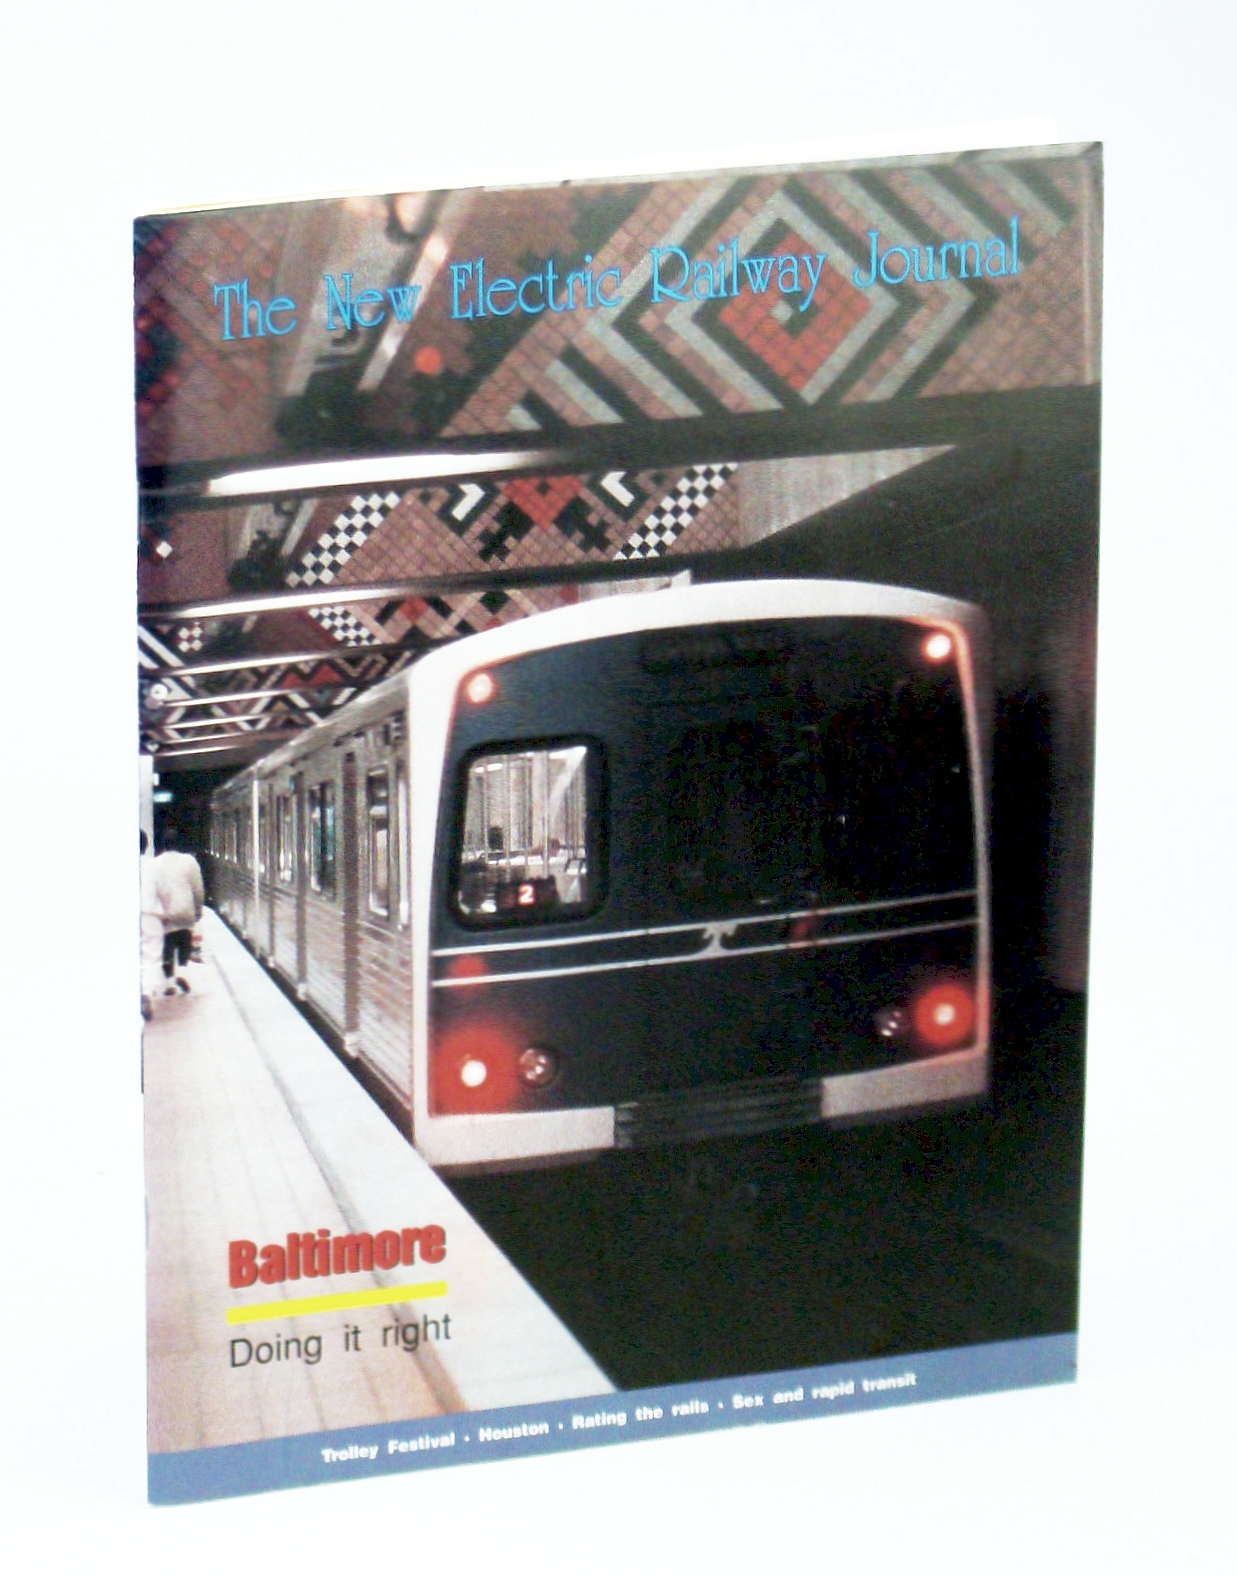 Image for The New Electric Railway Journal, Spring 1991, Vol. III, No. 3 - Rapid Transit for Houston?